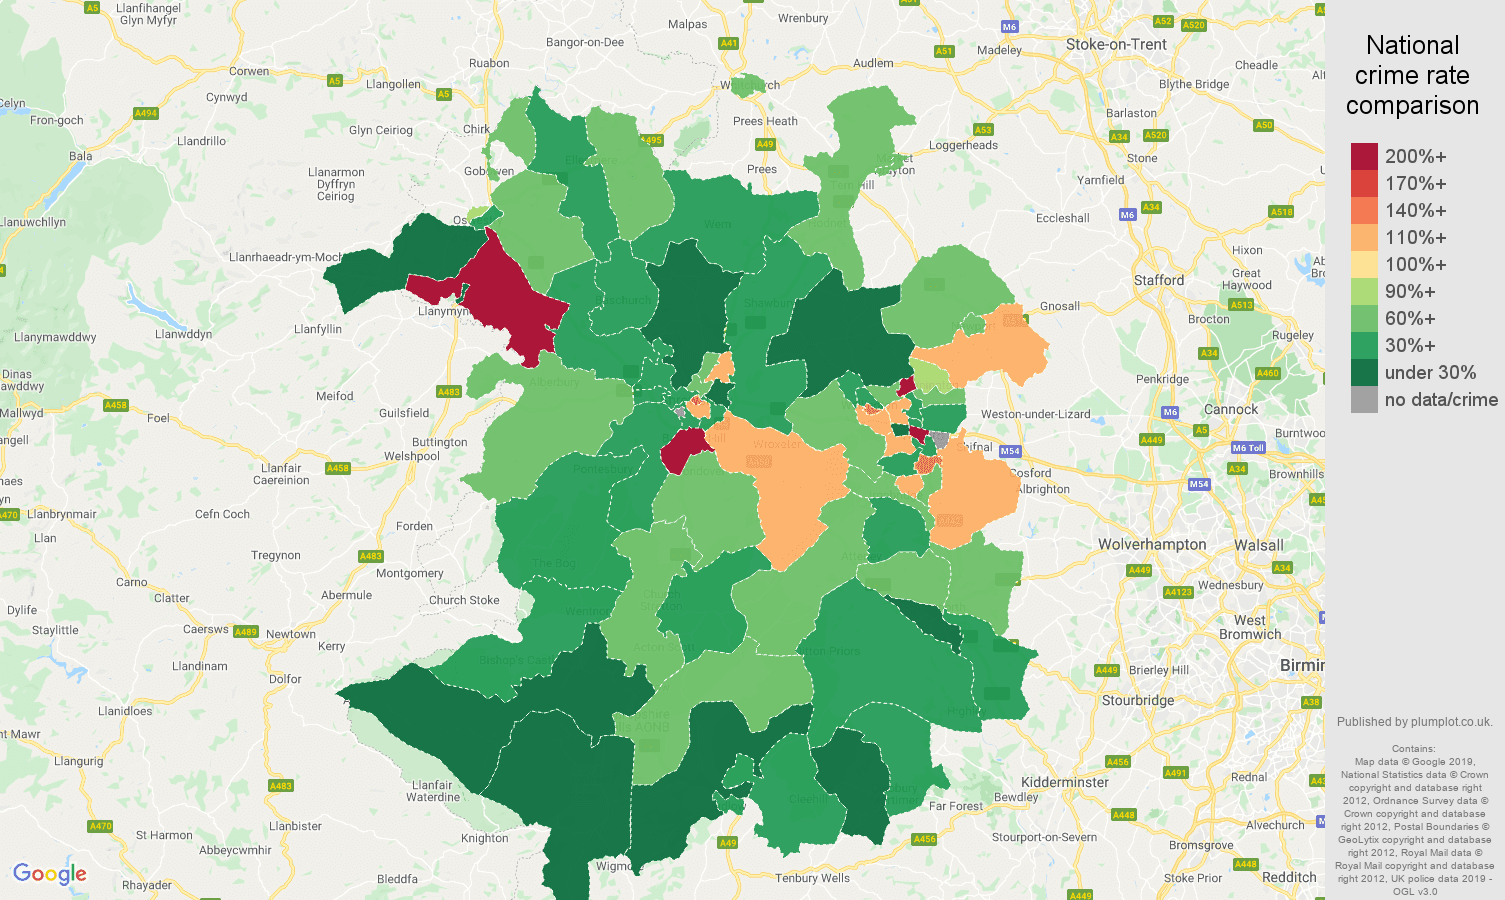 Shropshire other theft crime rate comparison map